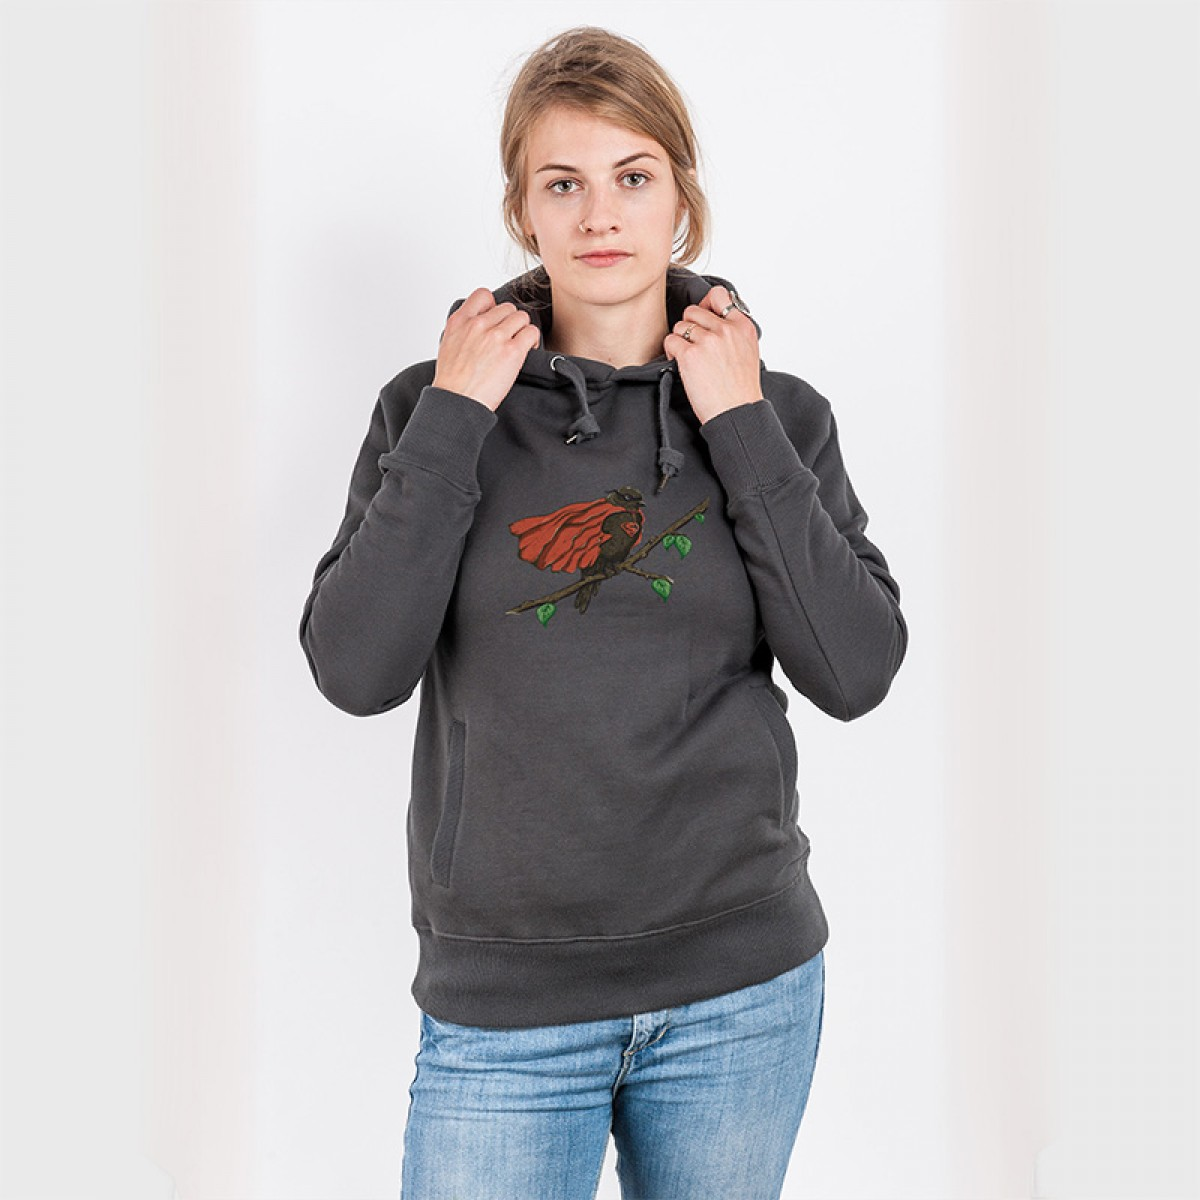 Robert Richter – Super Bird - Organic Cotton Unisex Hoodie